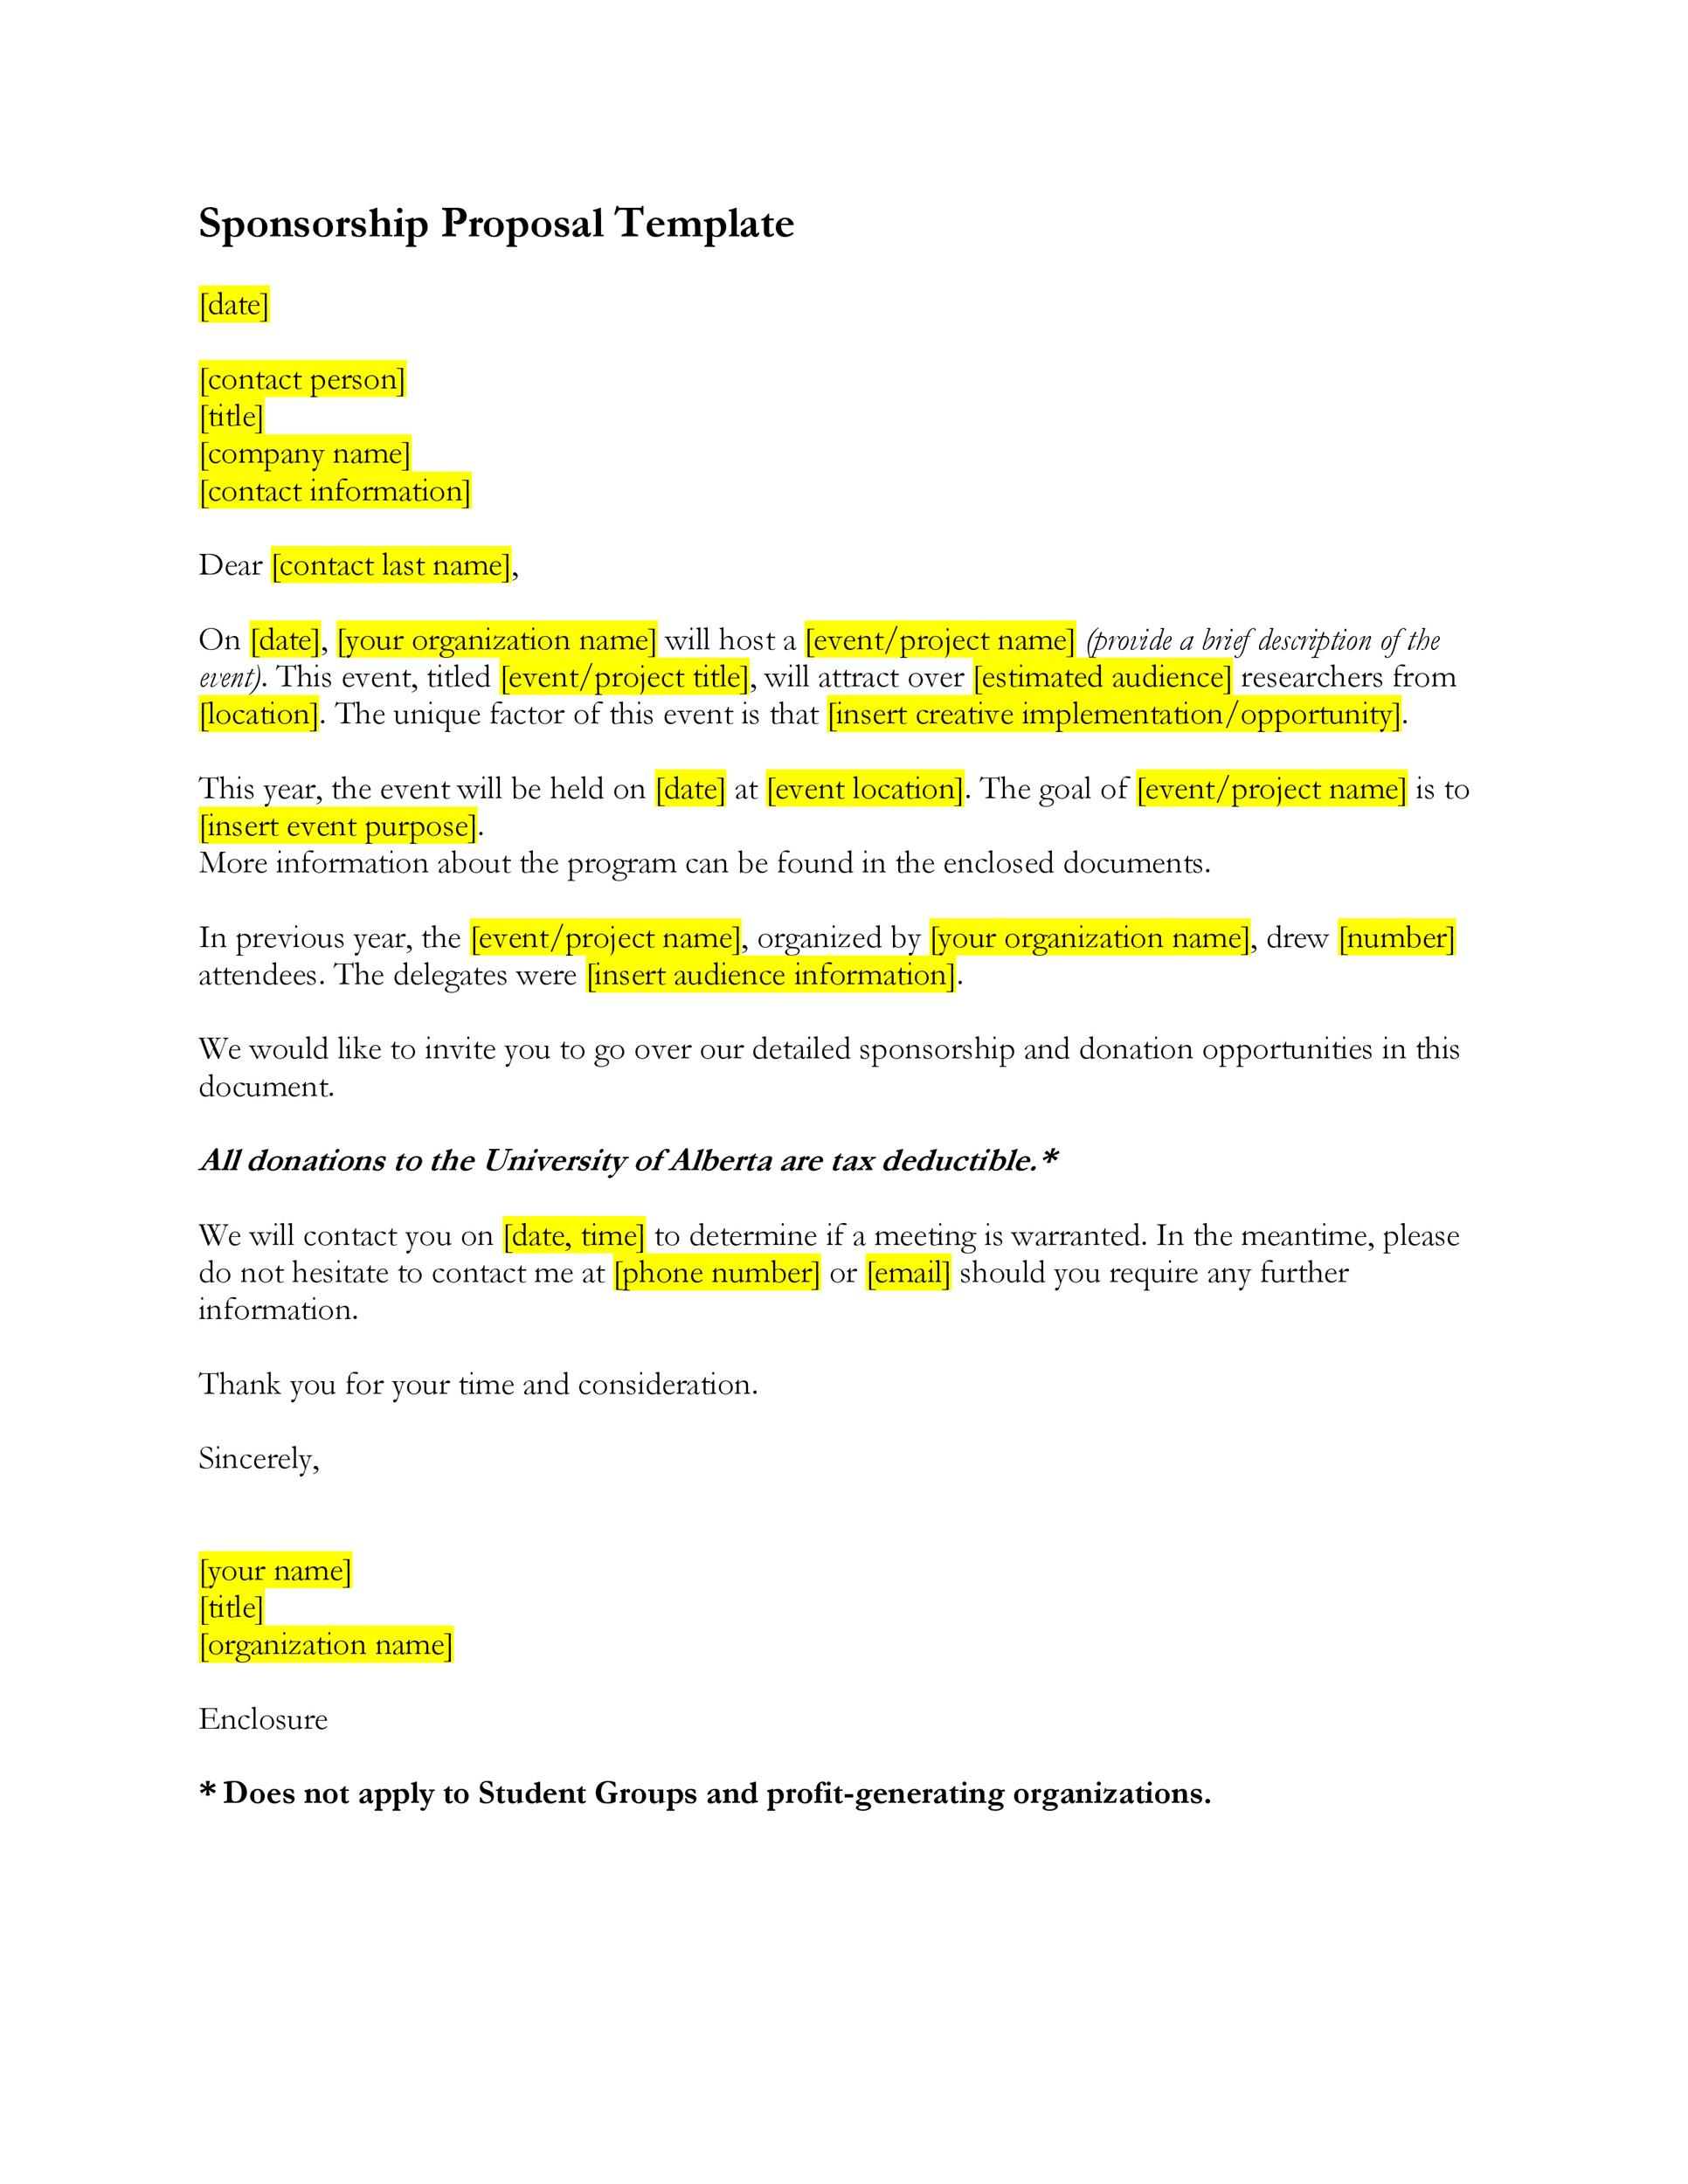 40 Sponsorship Letter Sponsorship Proposal Templates – Sponsorship Proposal Template